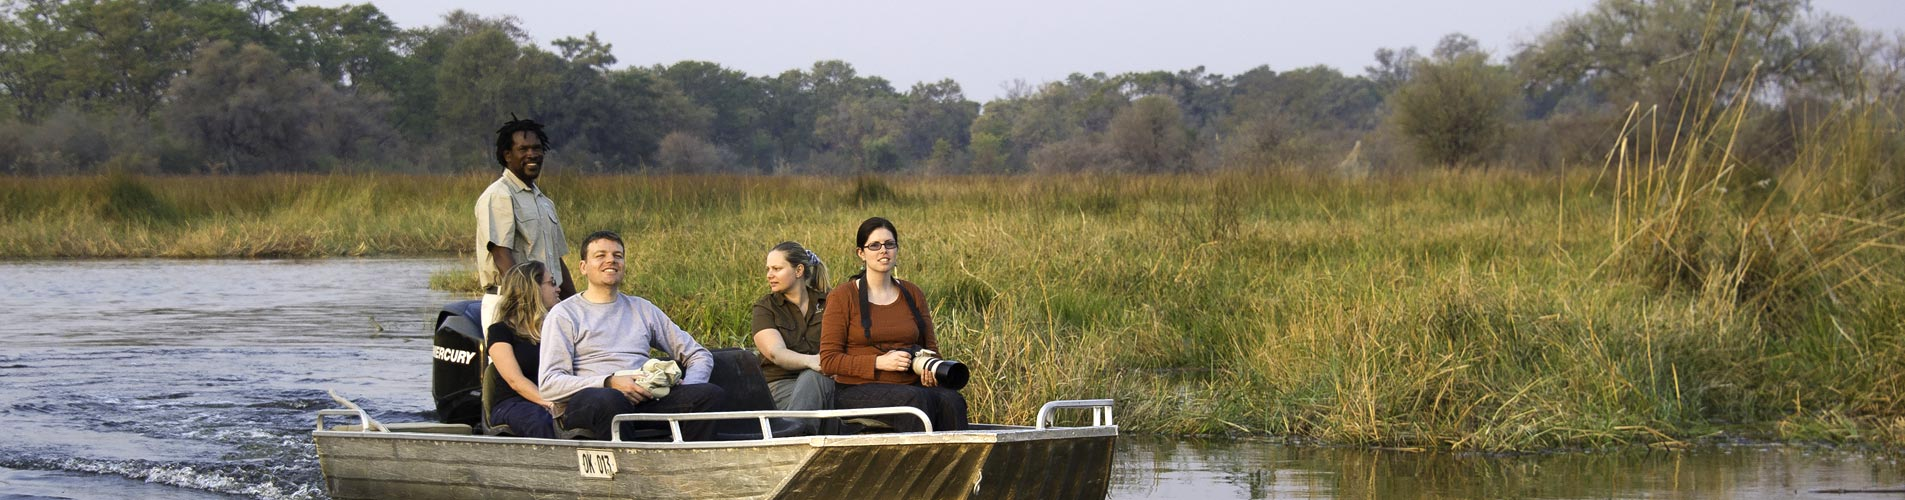 Okavango Boat Escorted Safari